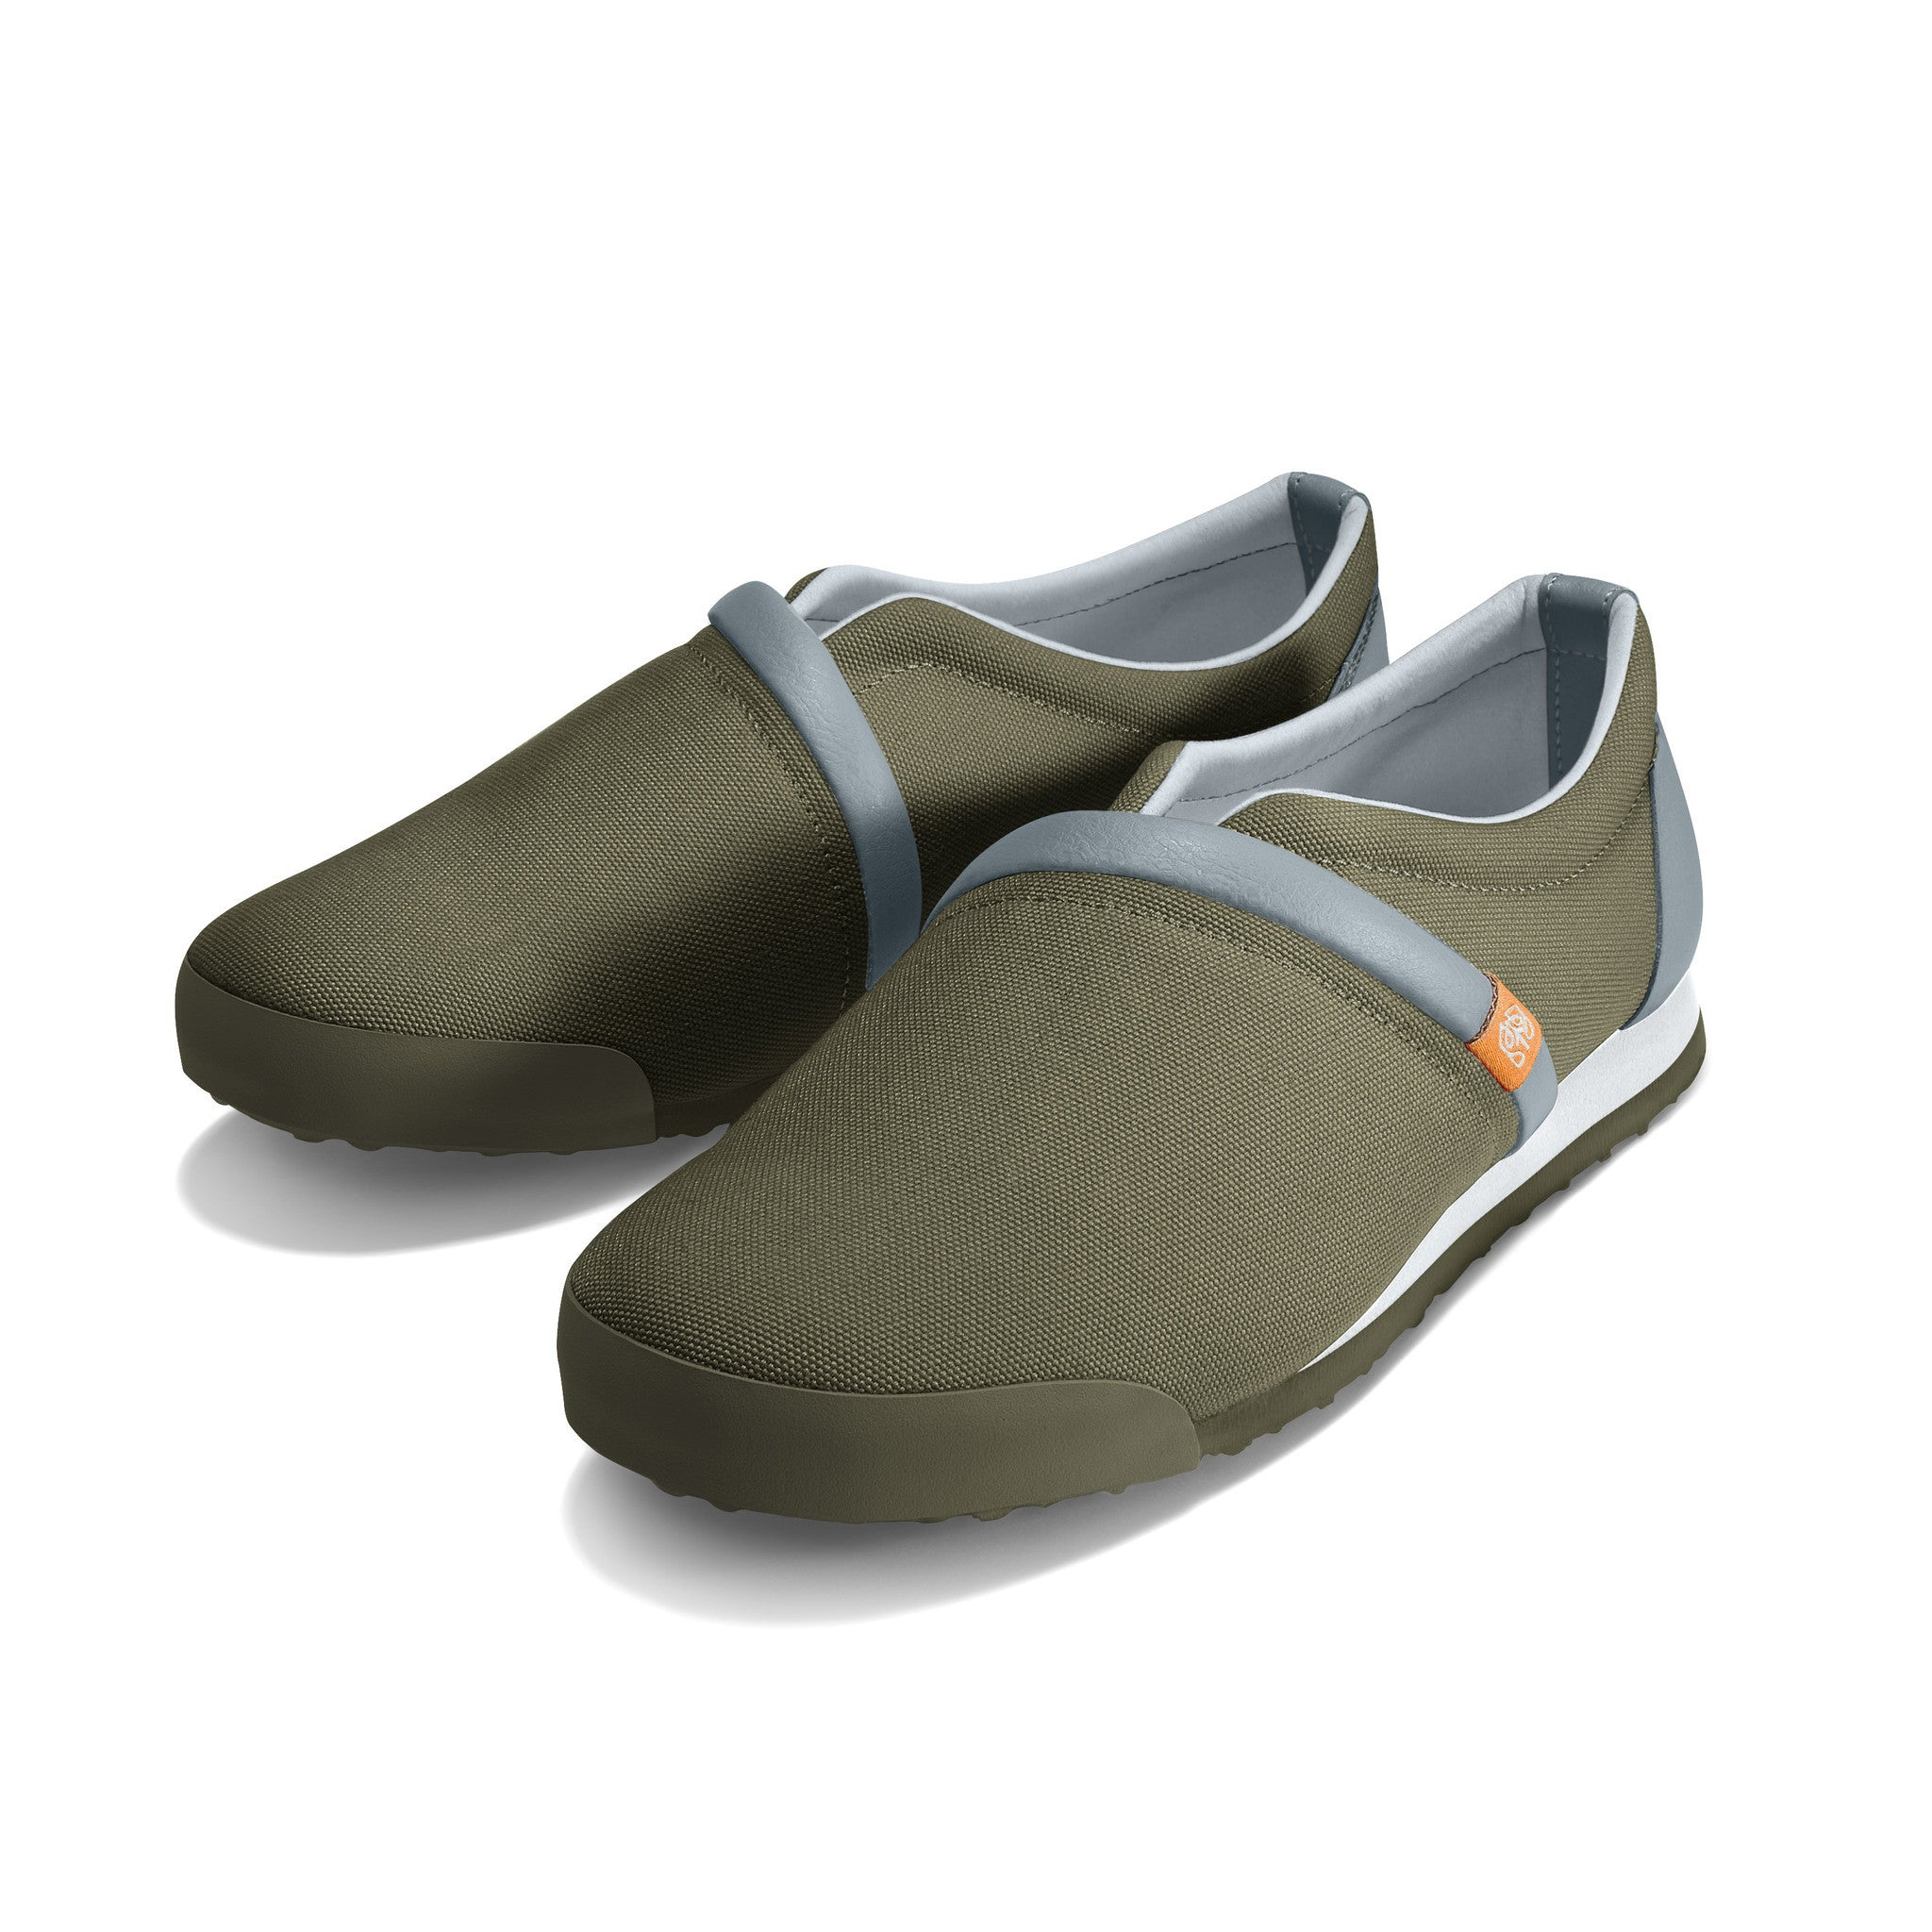 Military_Olive - Common Ground Footwear Shoes Left Perspective View